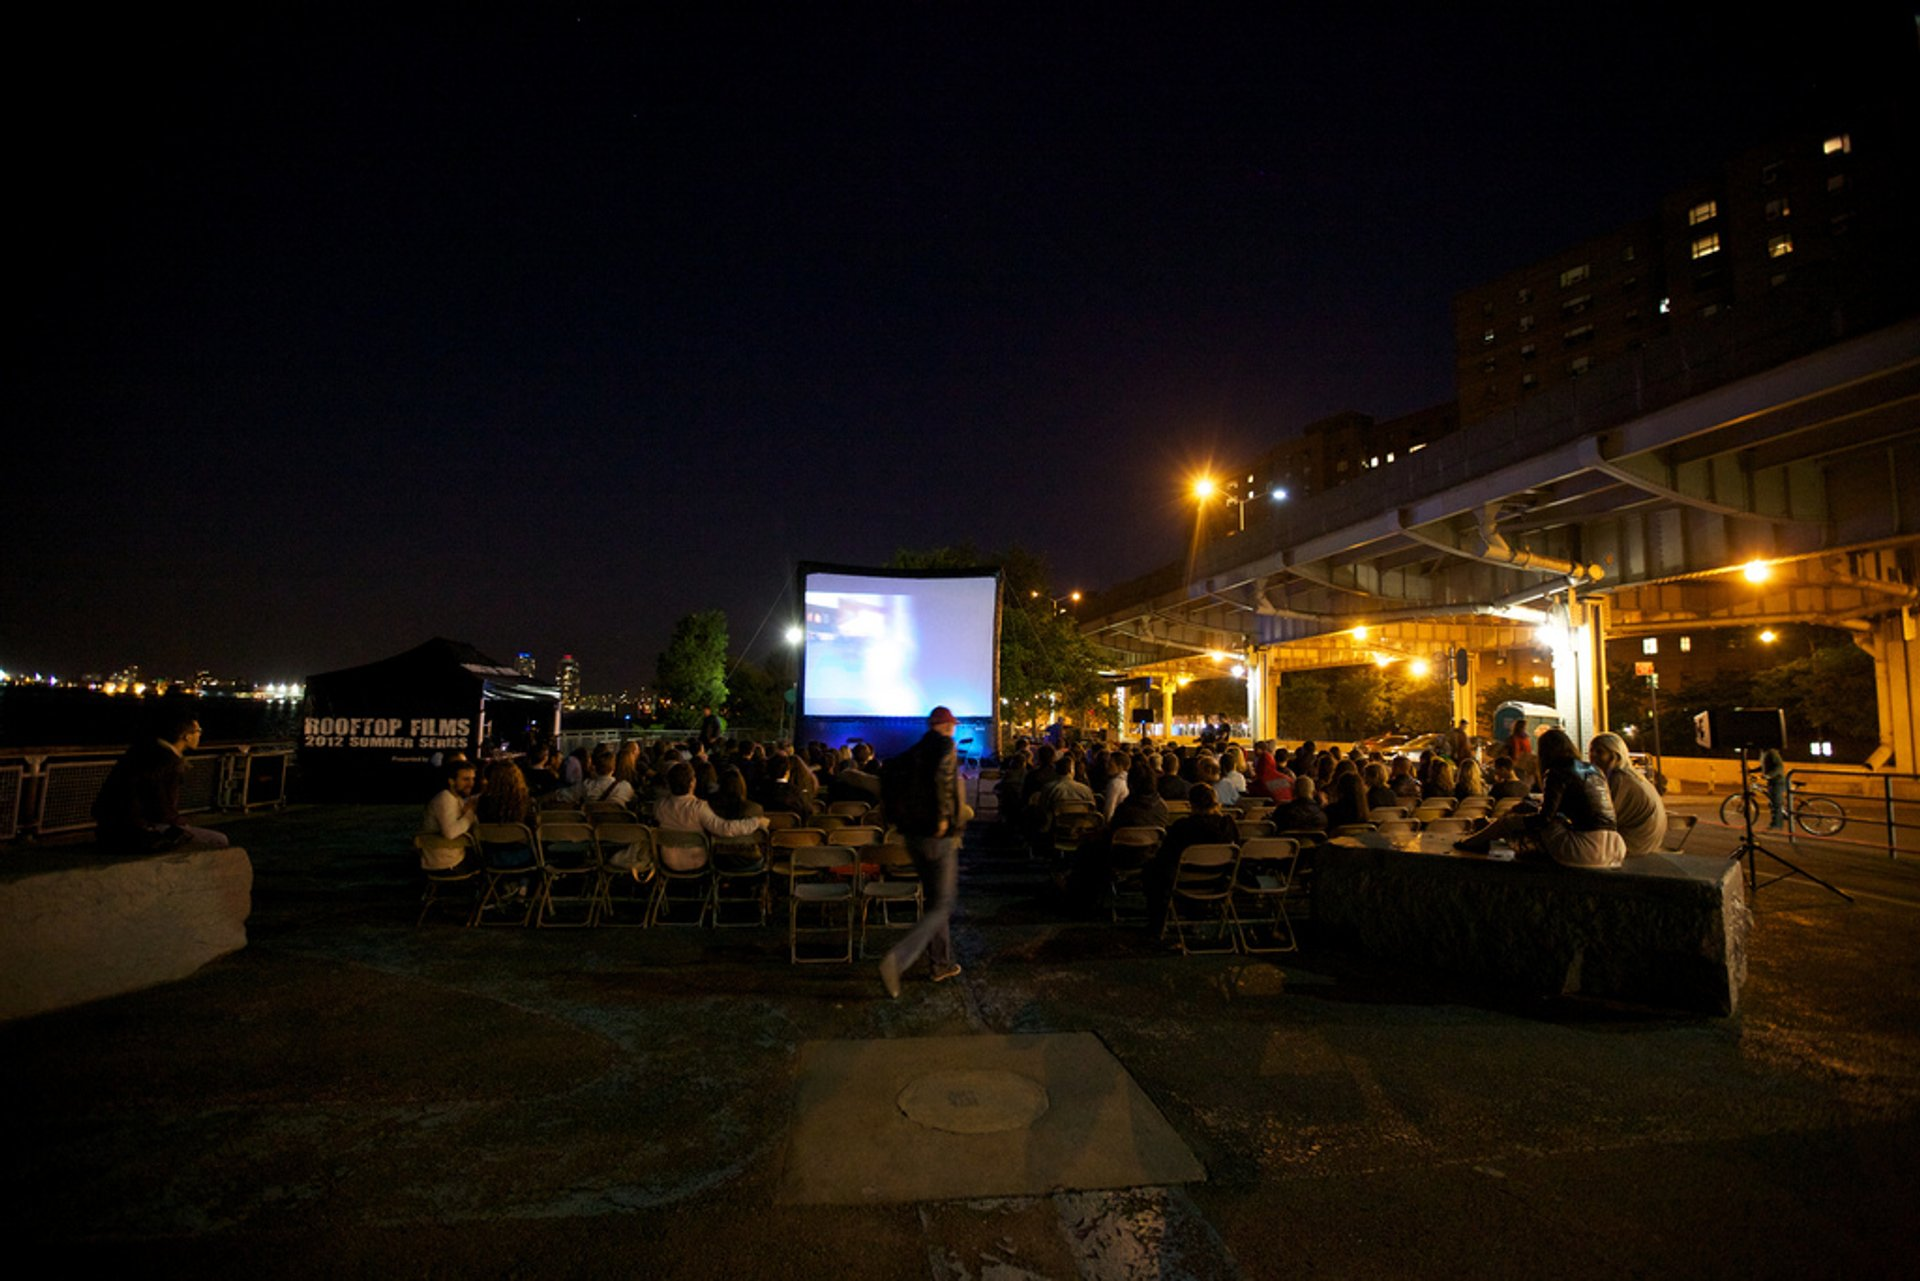 Rooftop Films in New York 2020 - Best Time